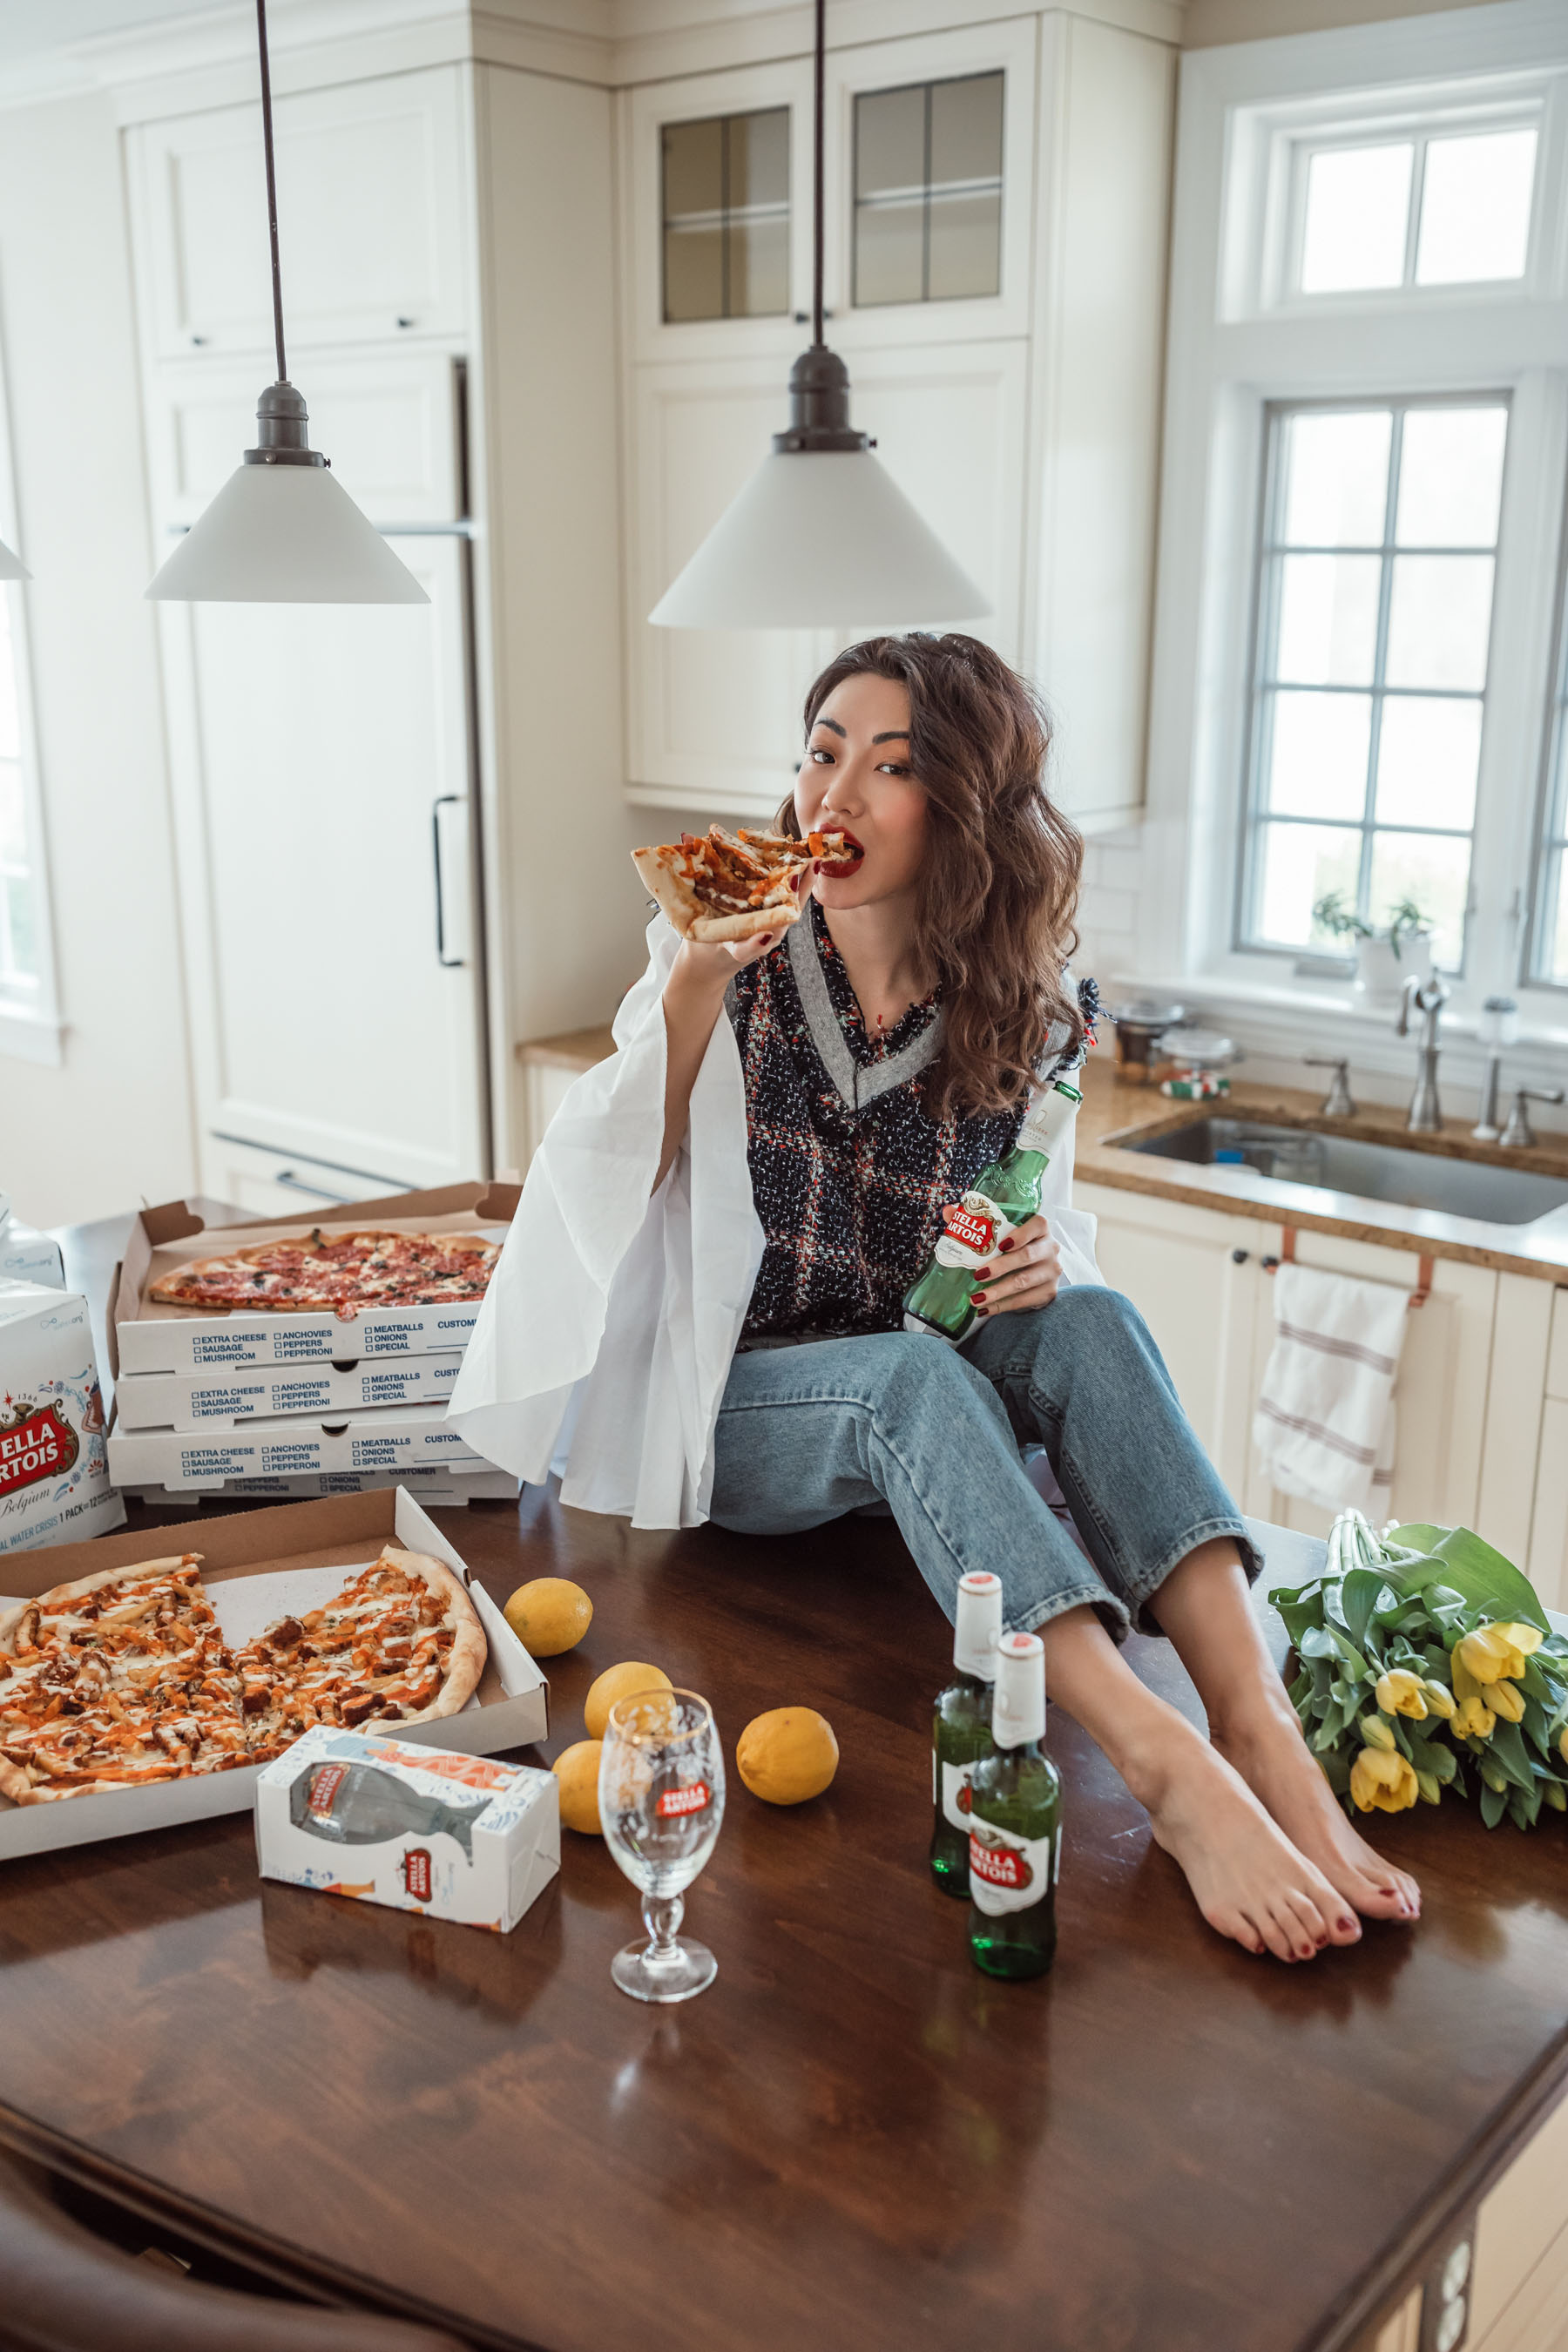 life hack products from amazon, blogger kitchen, stella artois // Notjessfashion